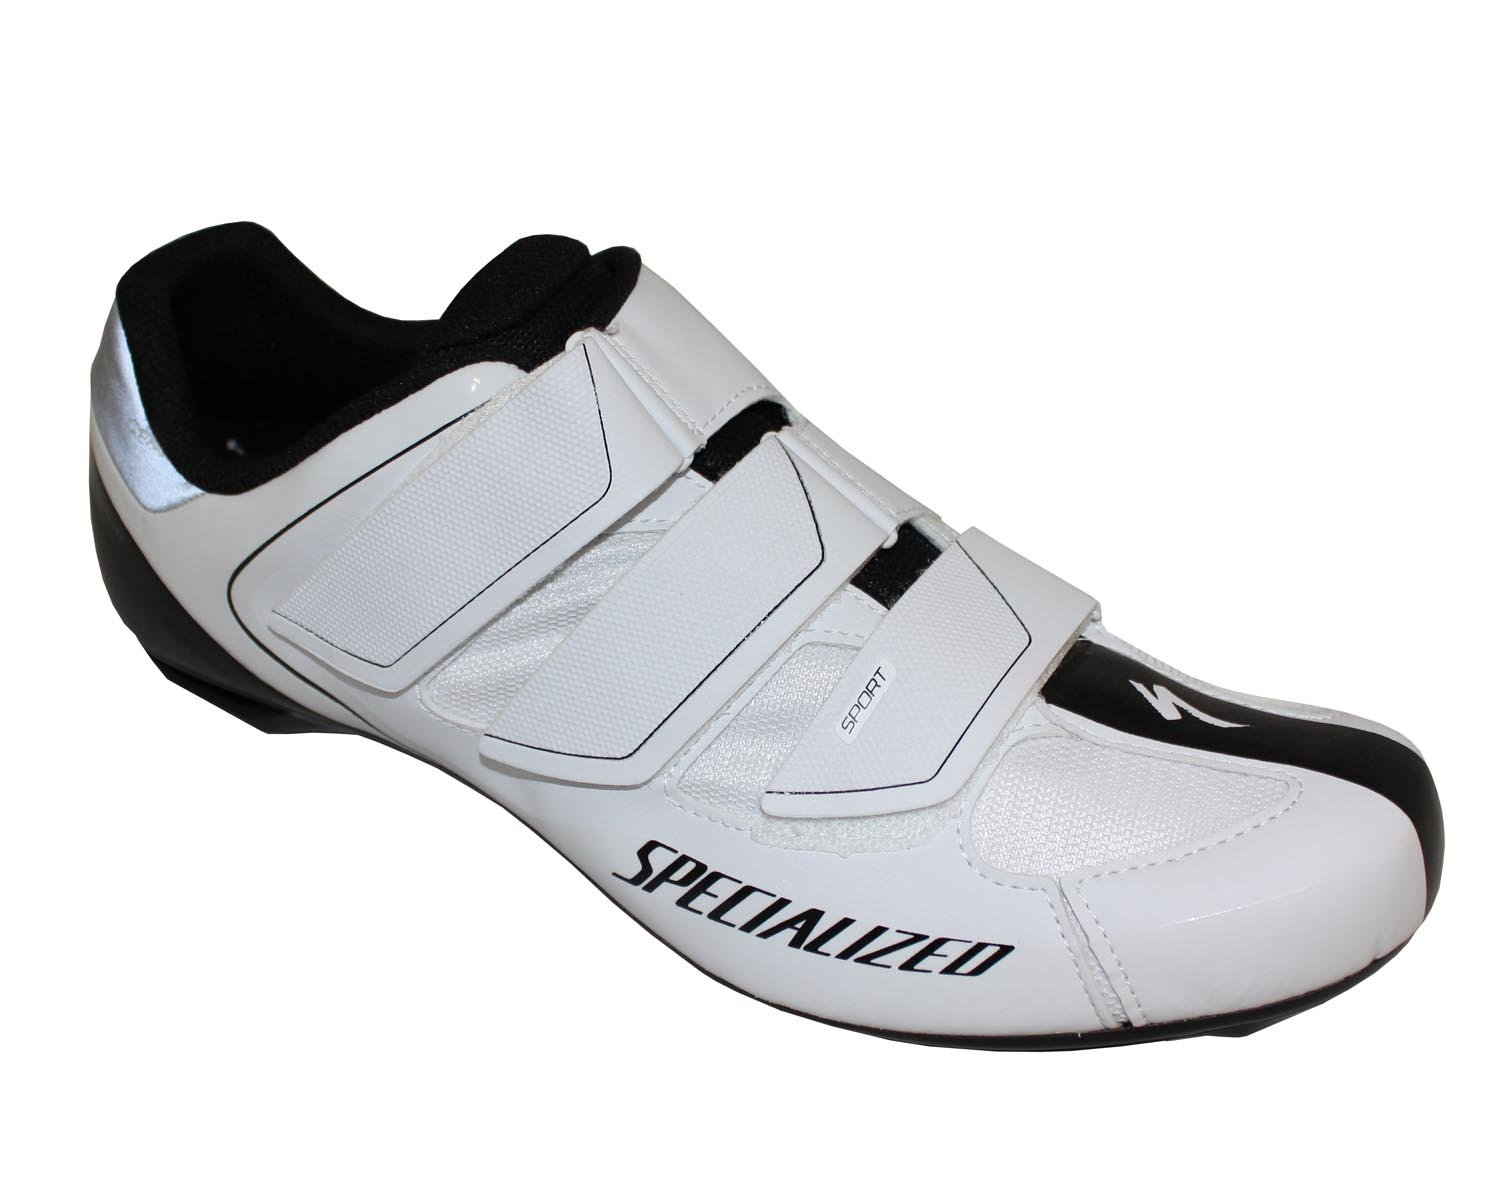 SPECIALIZED Sport RD 61215 - 3148 euros 48 US 13,75 UK 12,75: Amazon.es: Deportes y aire libre